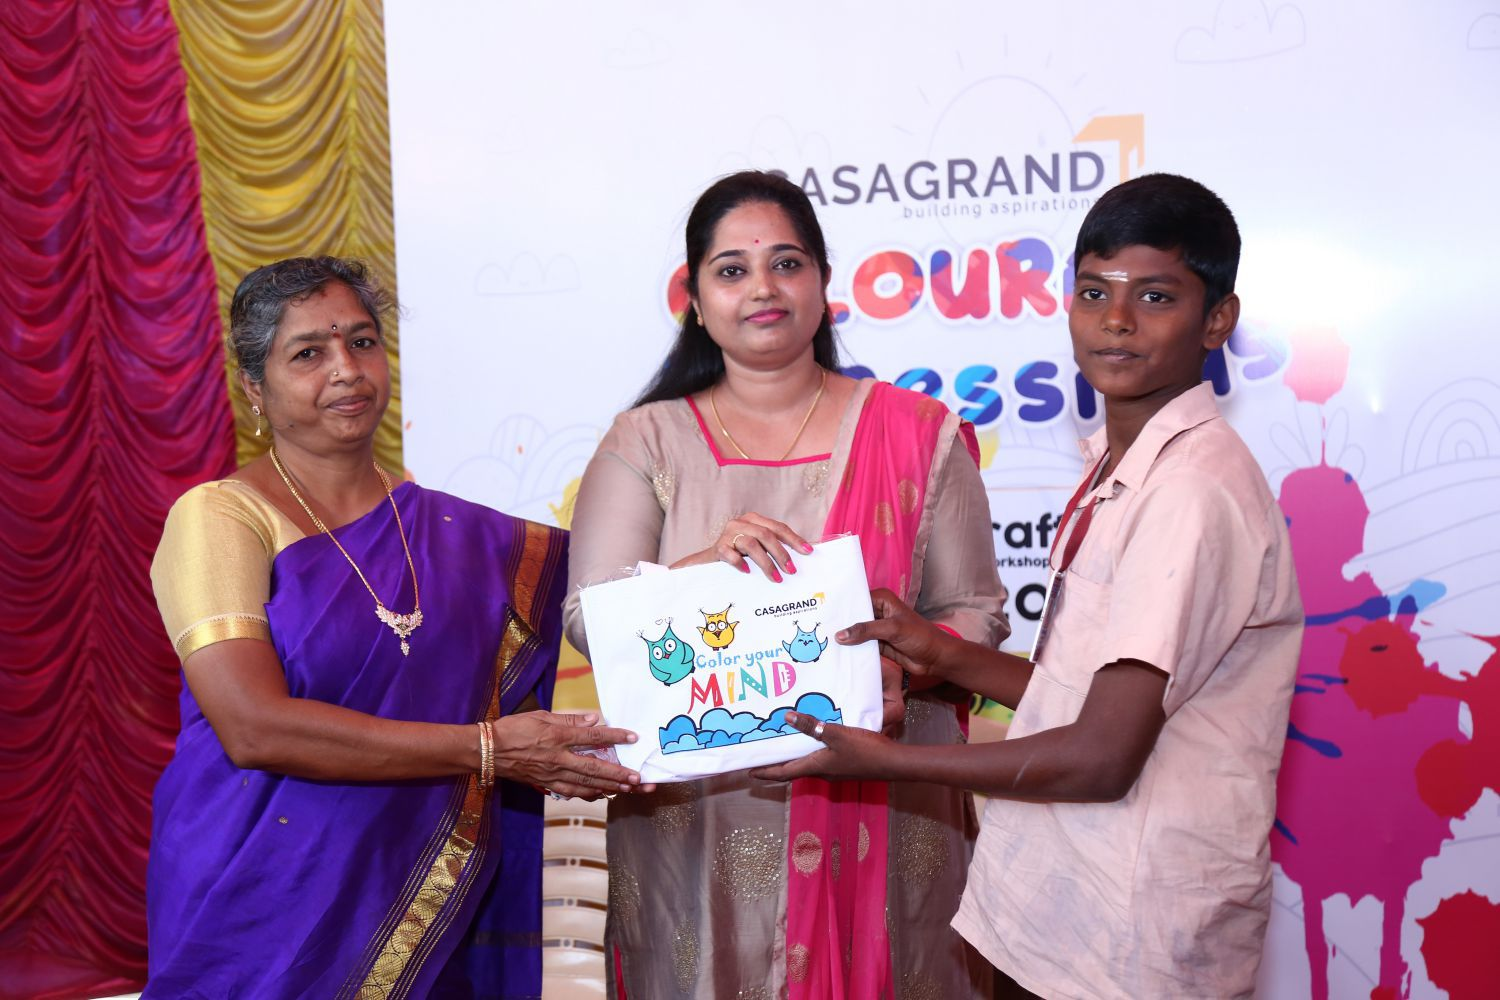 Casagrand Builder distributed Arts & Crafts materials to 100 govt. school student